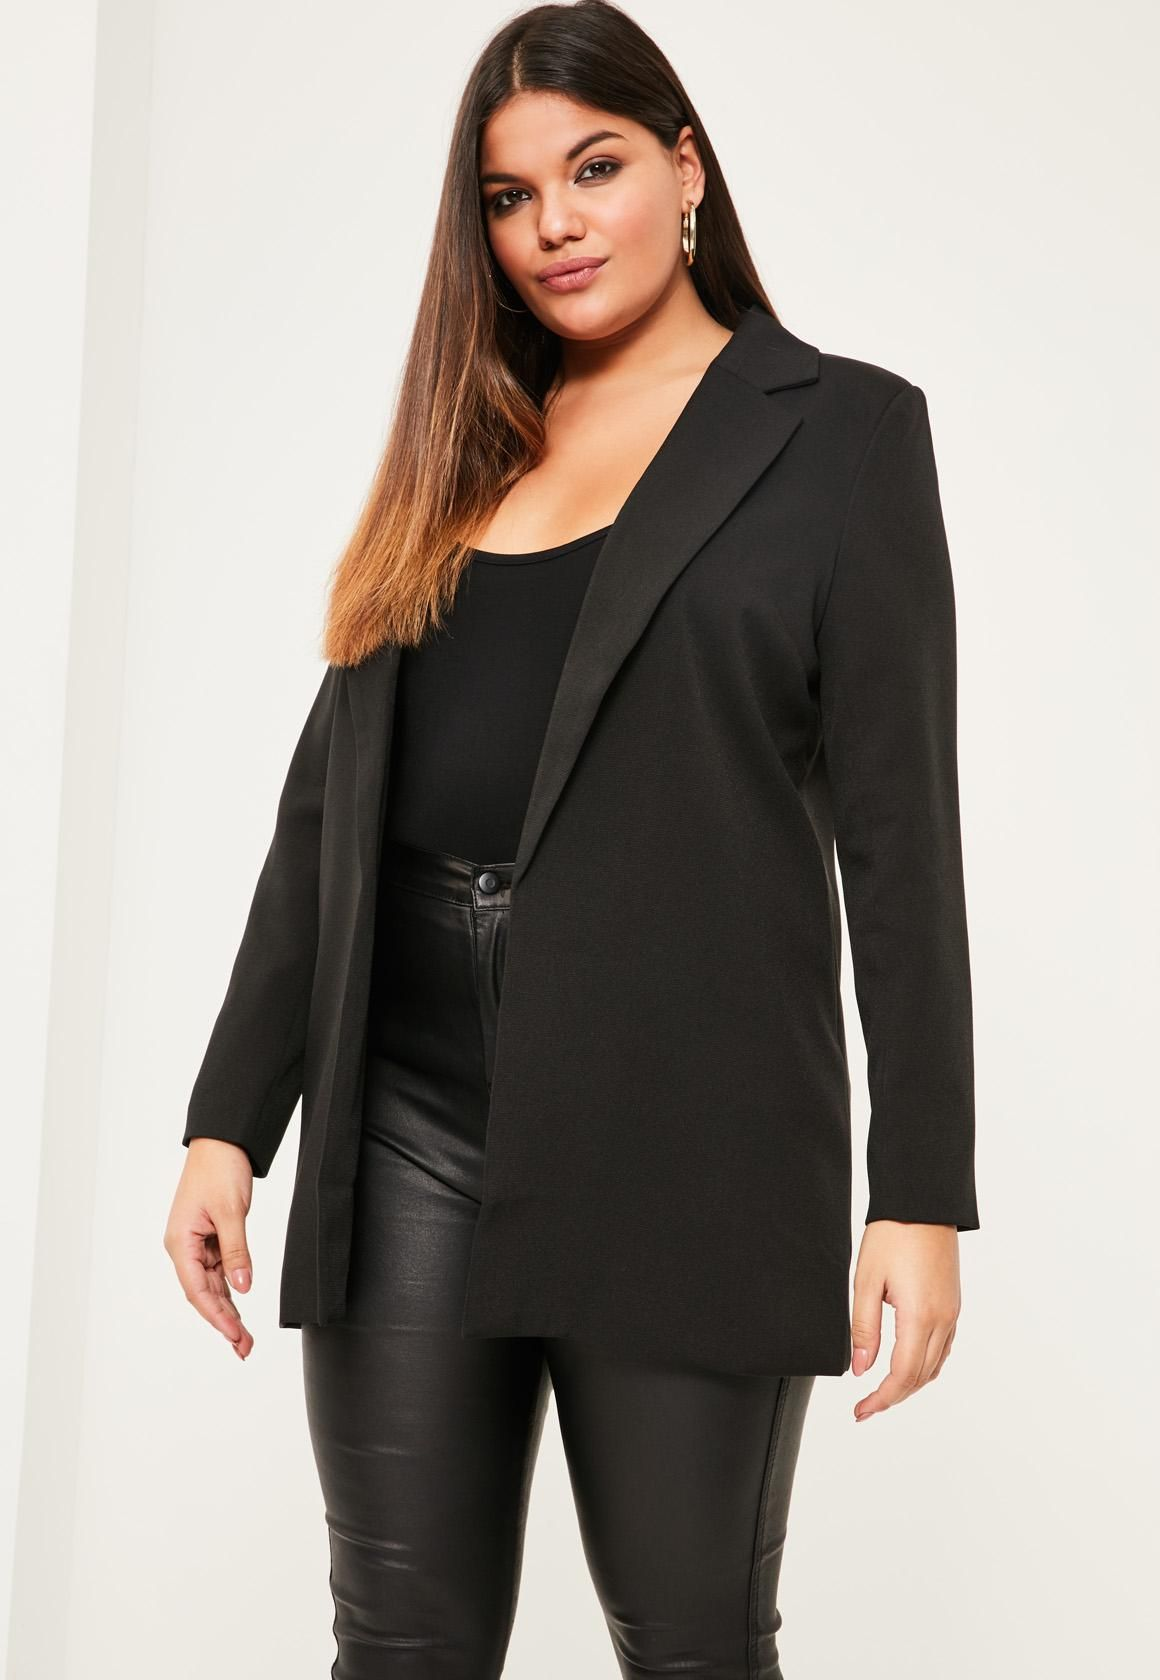 actual cool af plus size jackets | missguided, blazers and dream